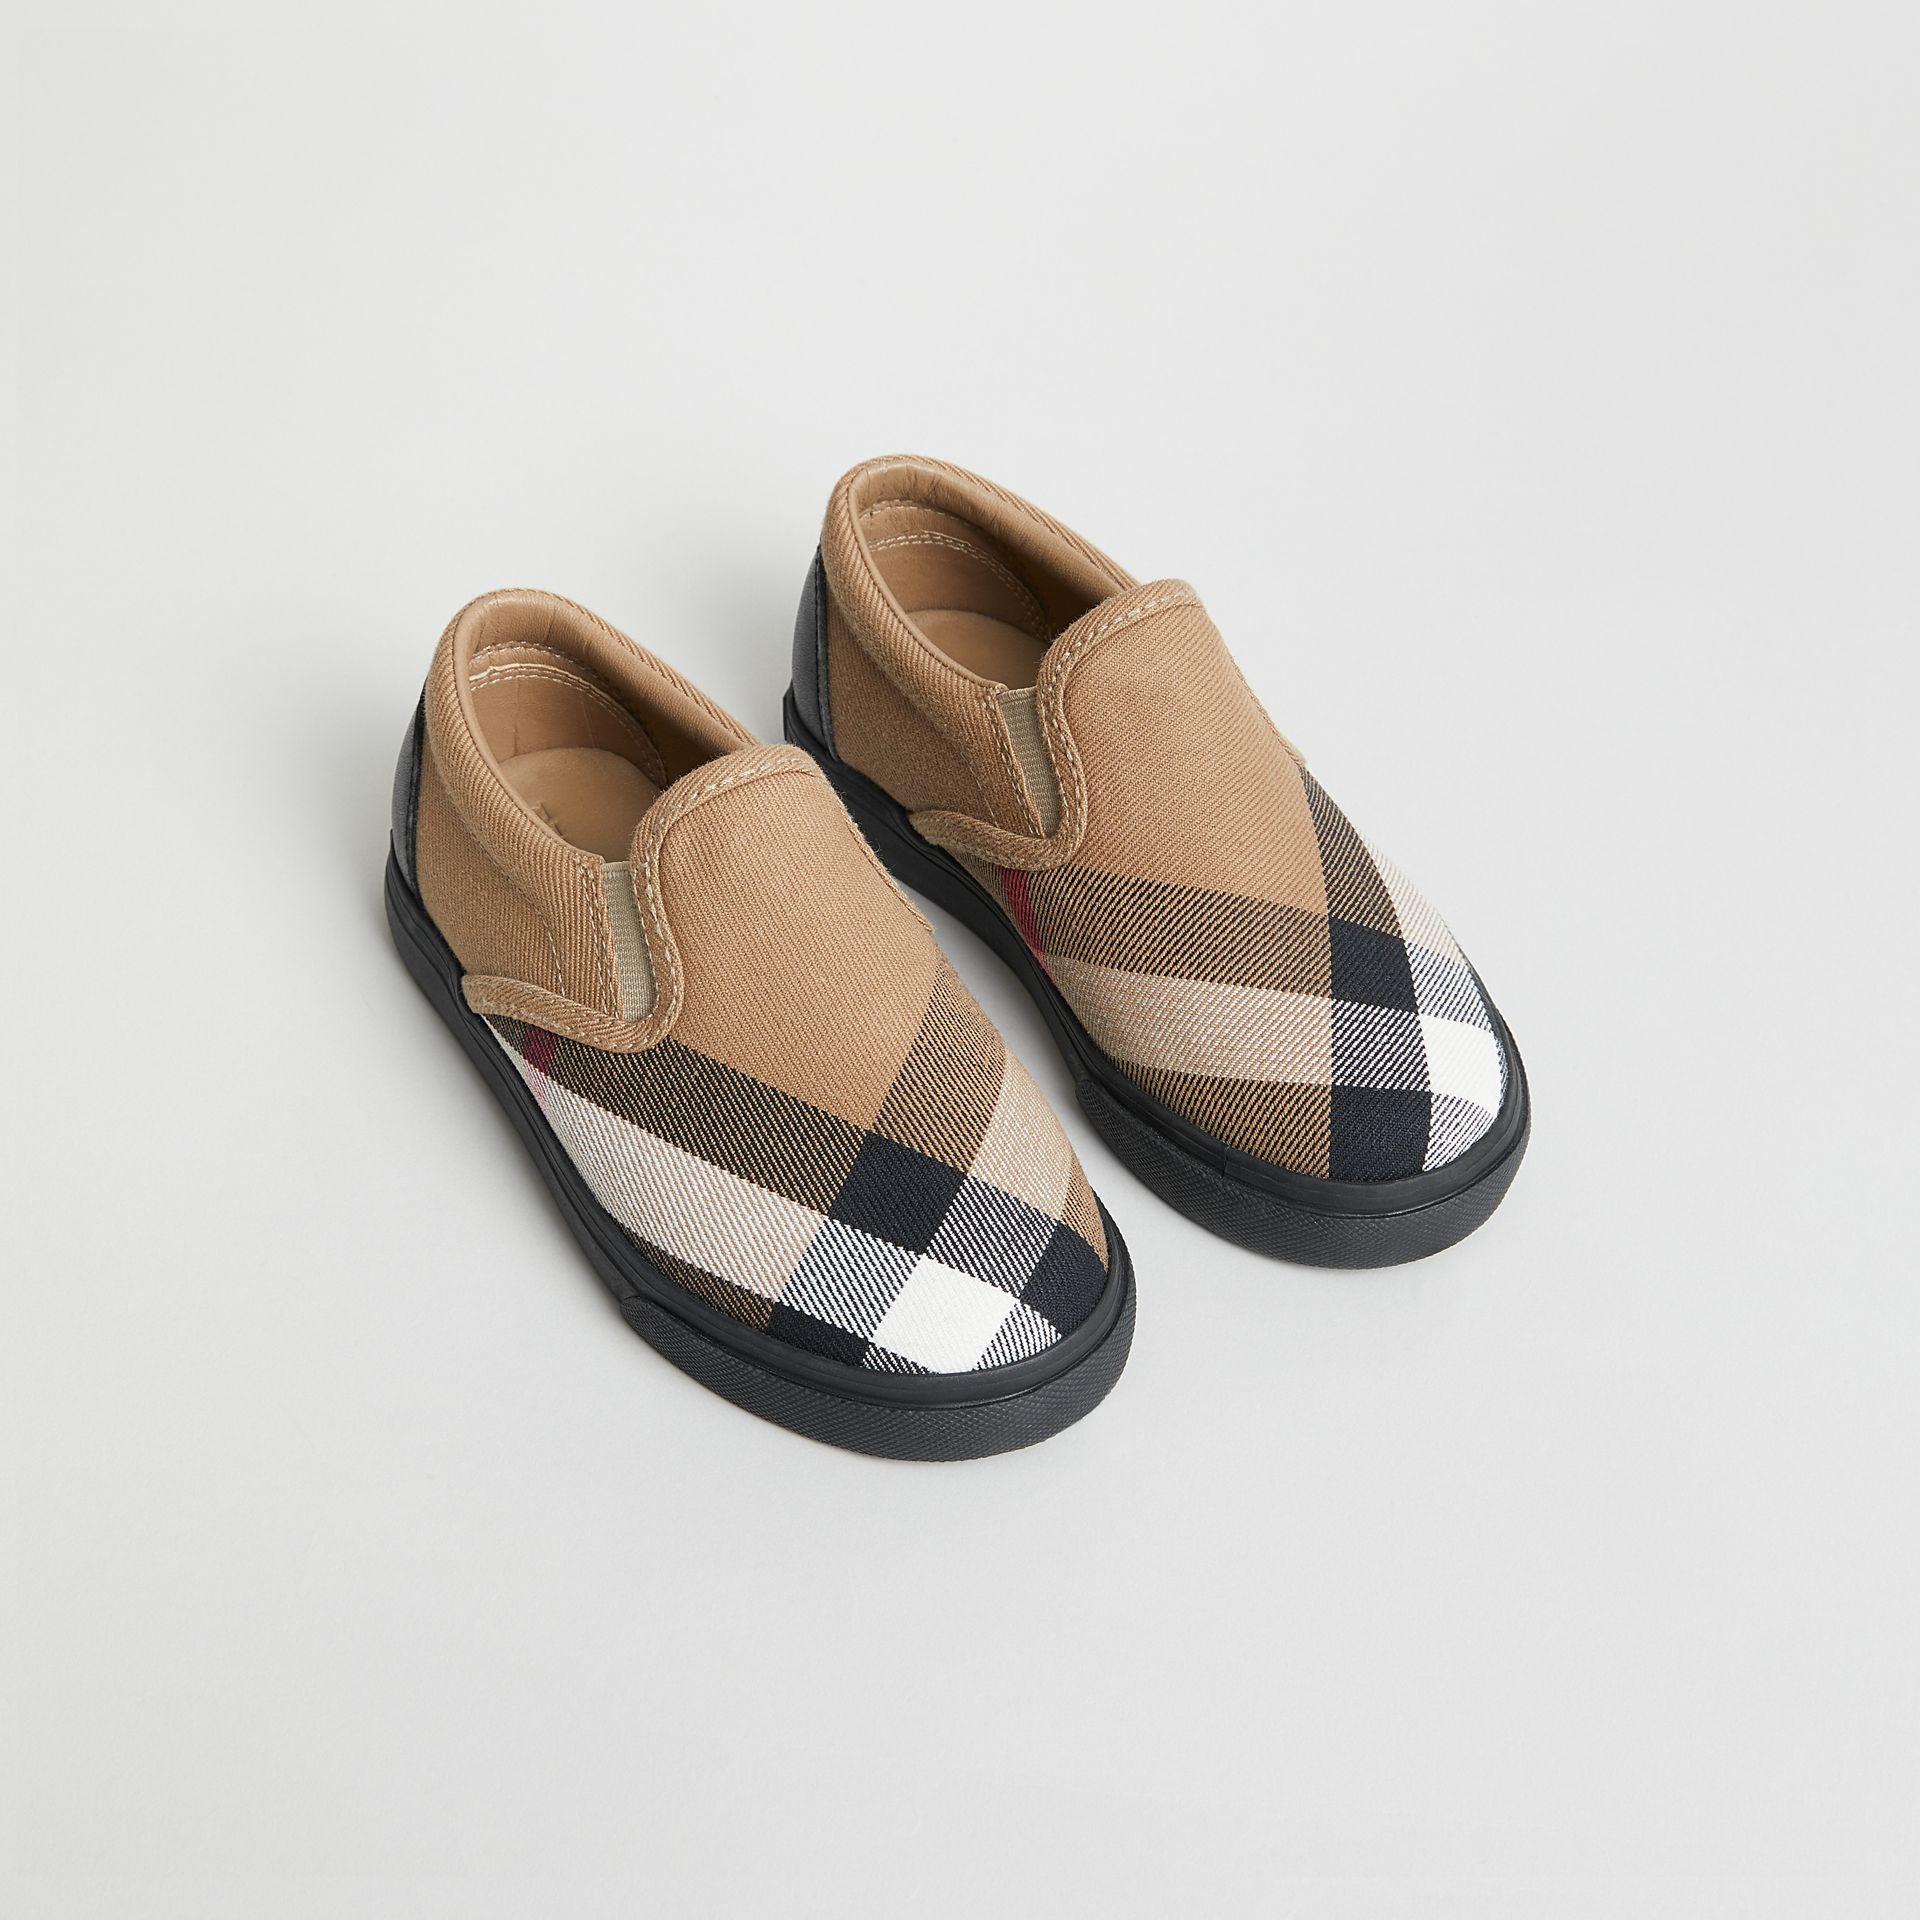 House Check and Leather Slip-on Sneakers in Classic/black | Burberry Singapore - gallery image 0